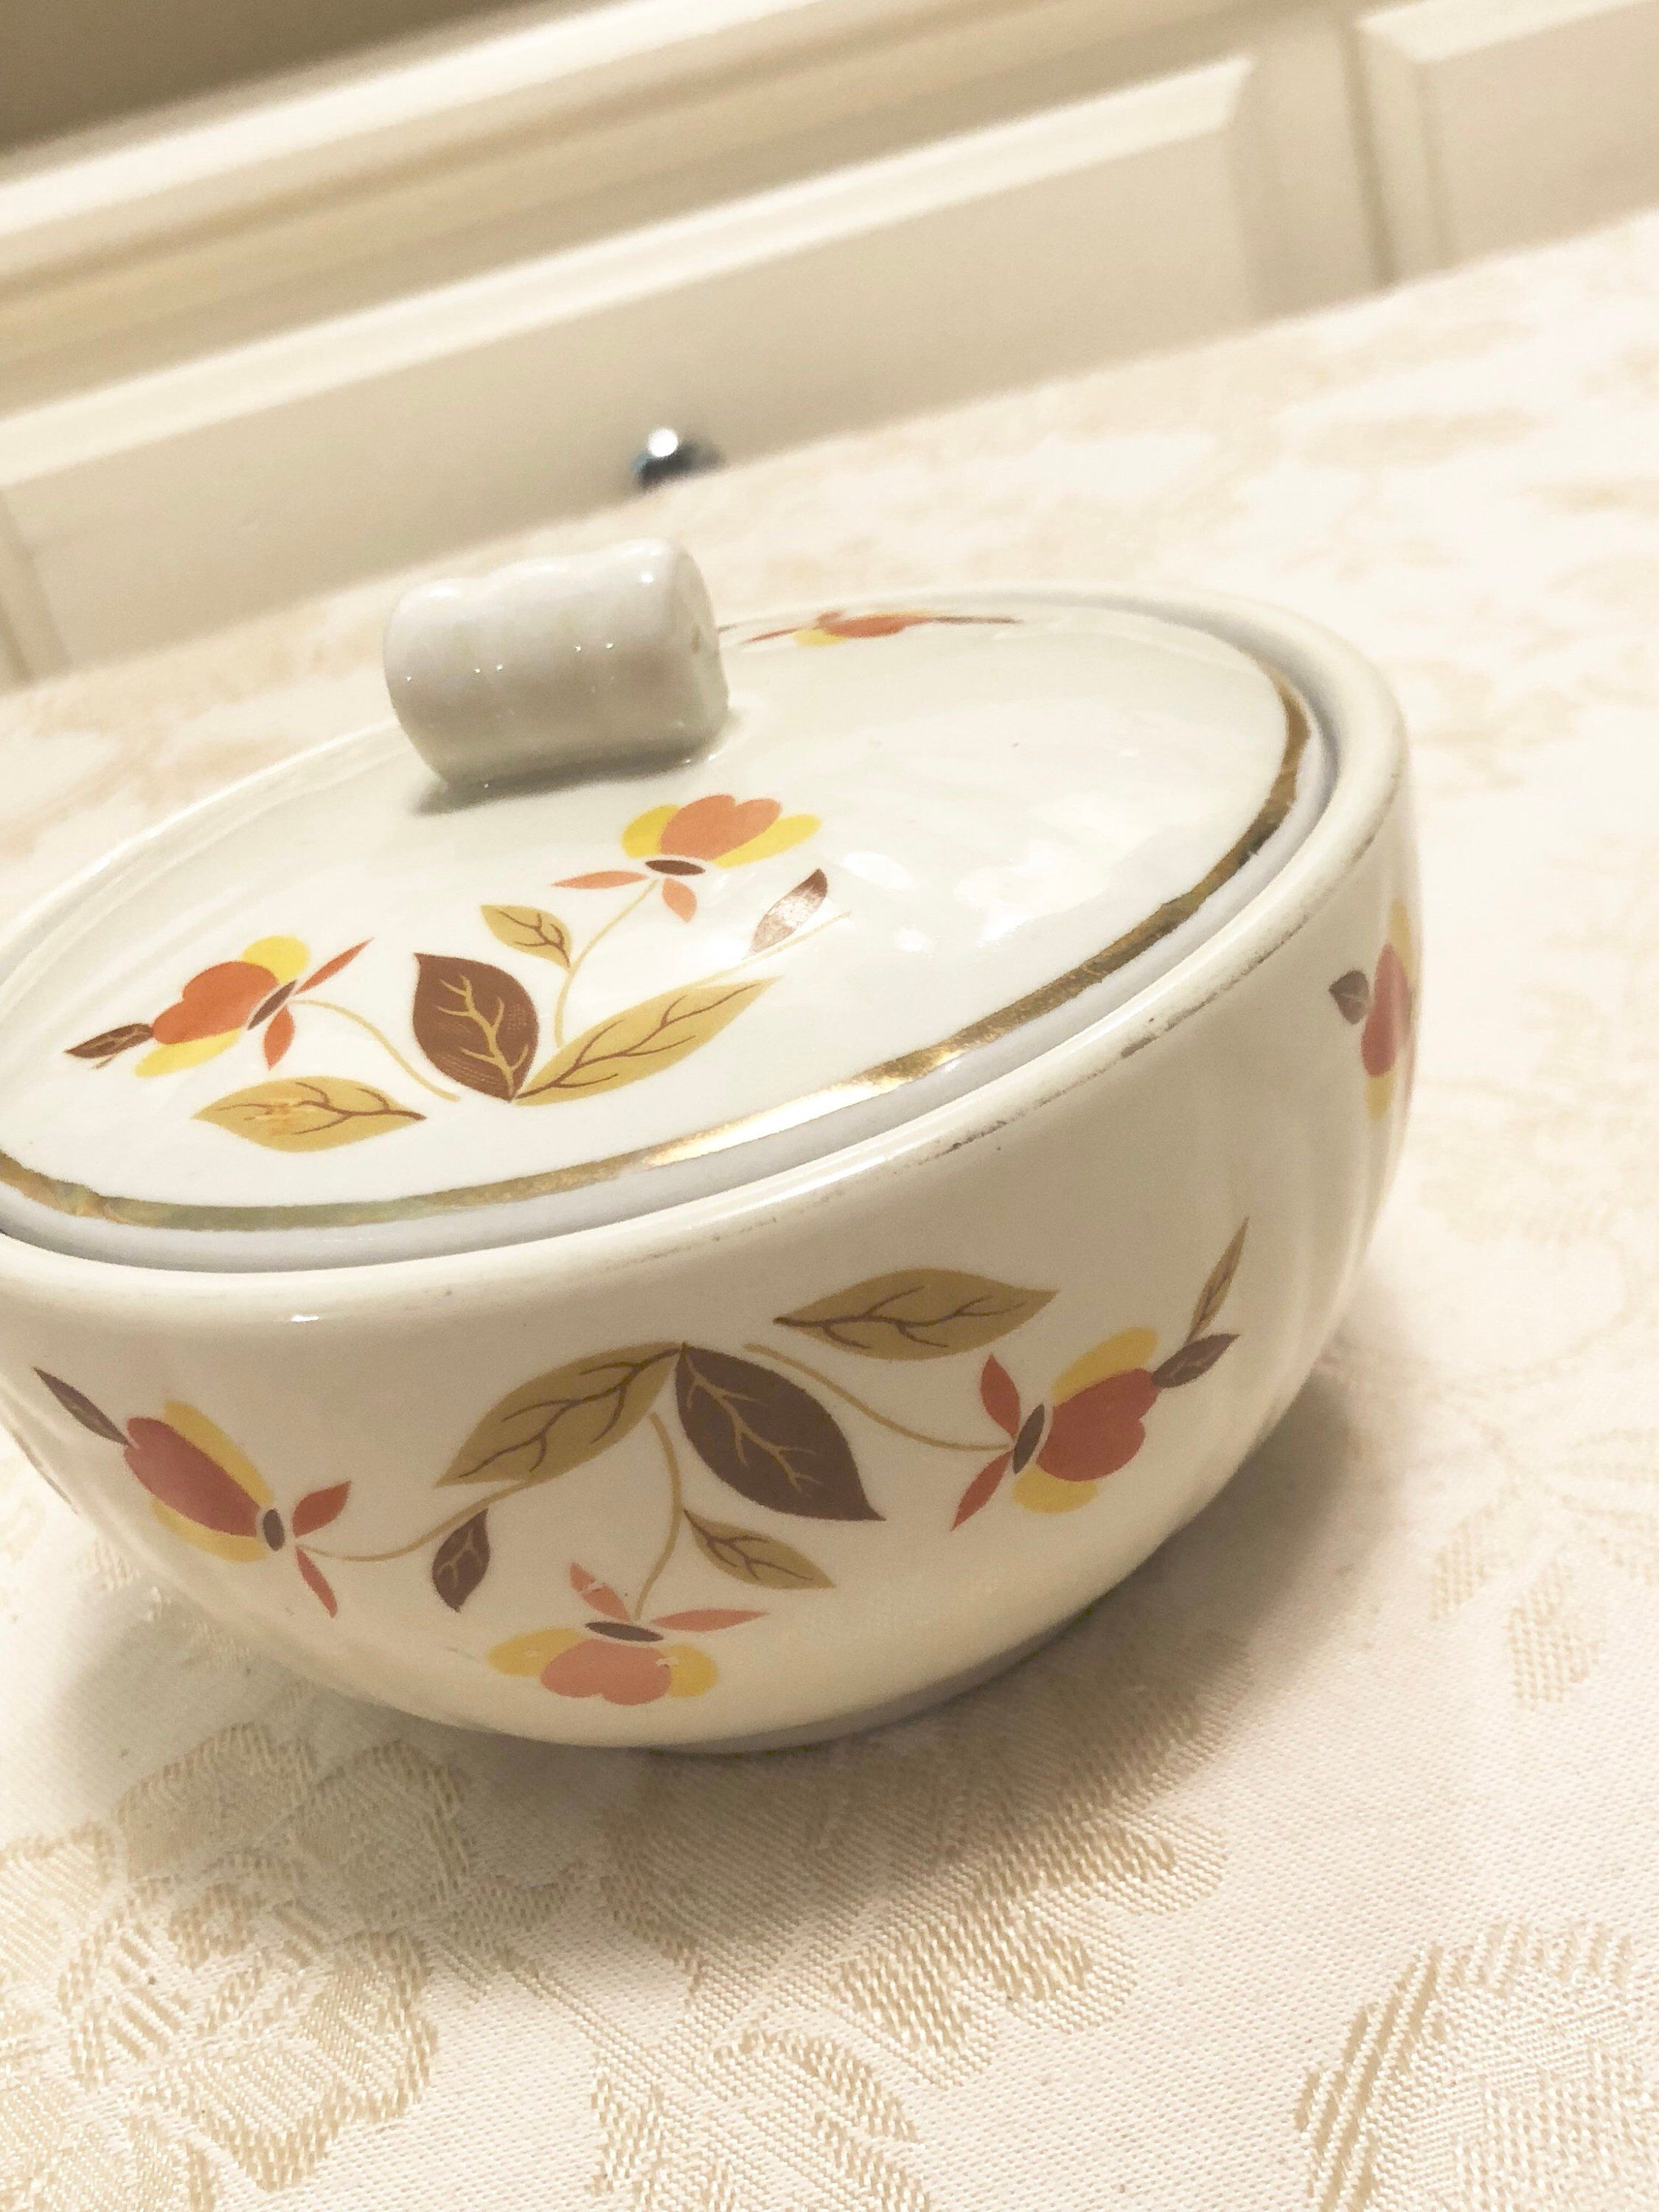 Hall Covered Dish Fall Leafs Detailing Fall Flower By Etsy In 2021 Antique Dishes Vintage Porcelain Hall Pottery